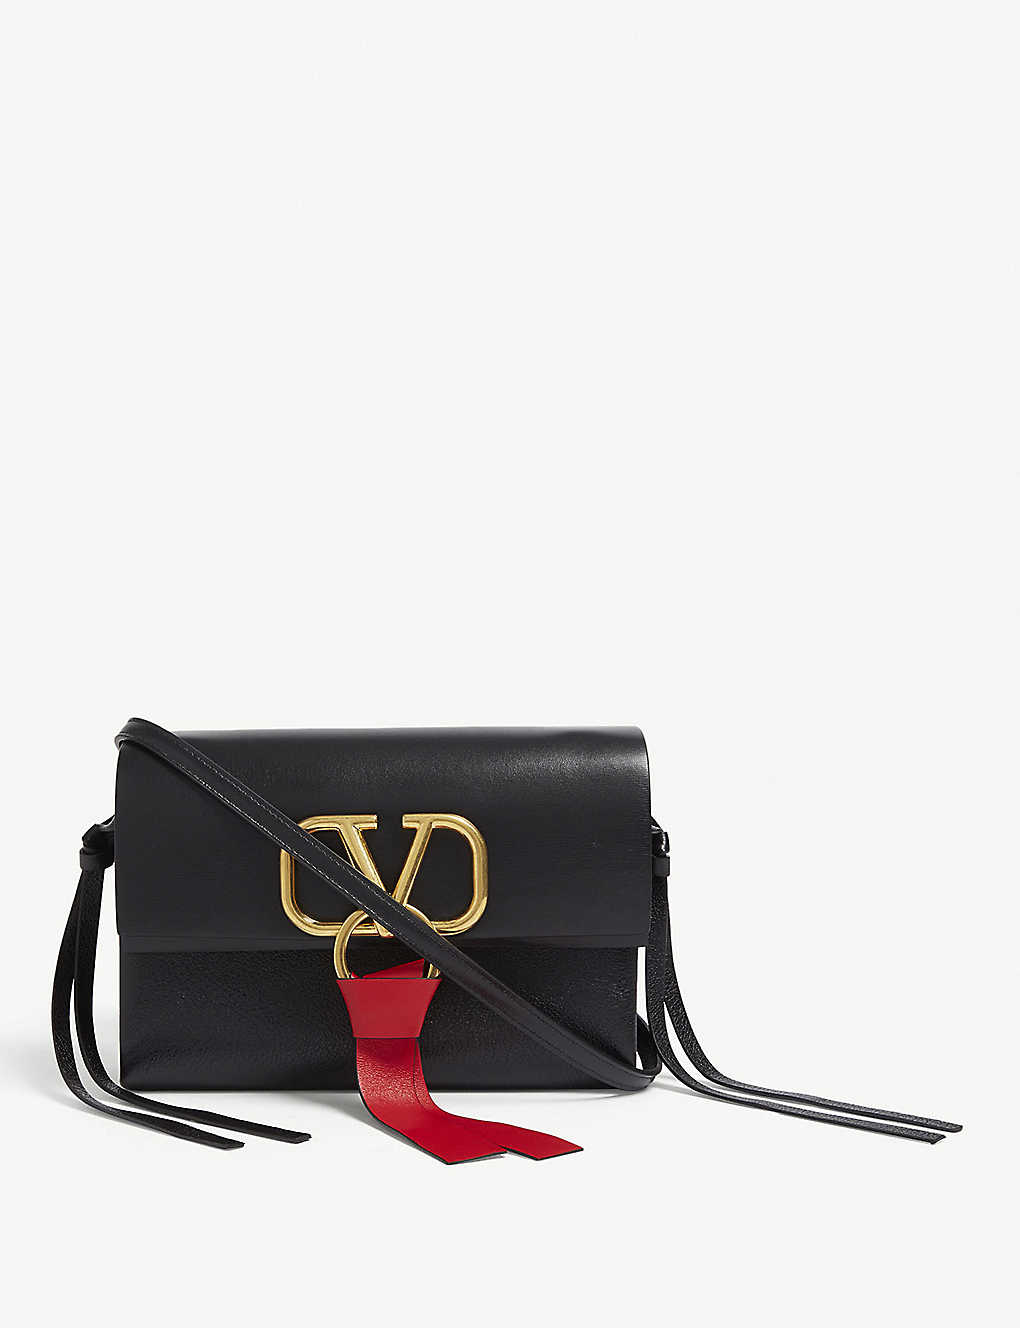 373efafcf217a VALENTINO - Vring leather mini cross-body bag